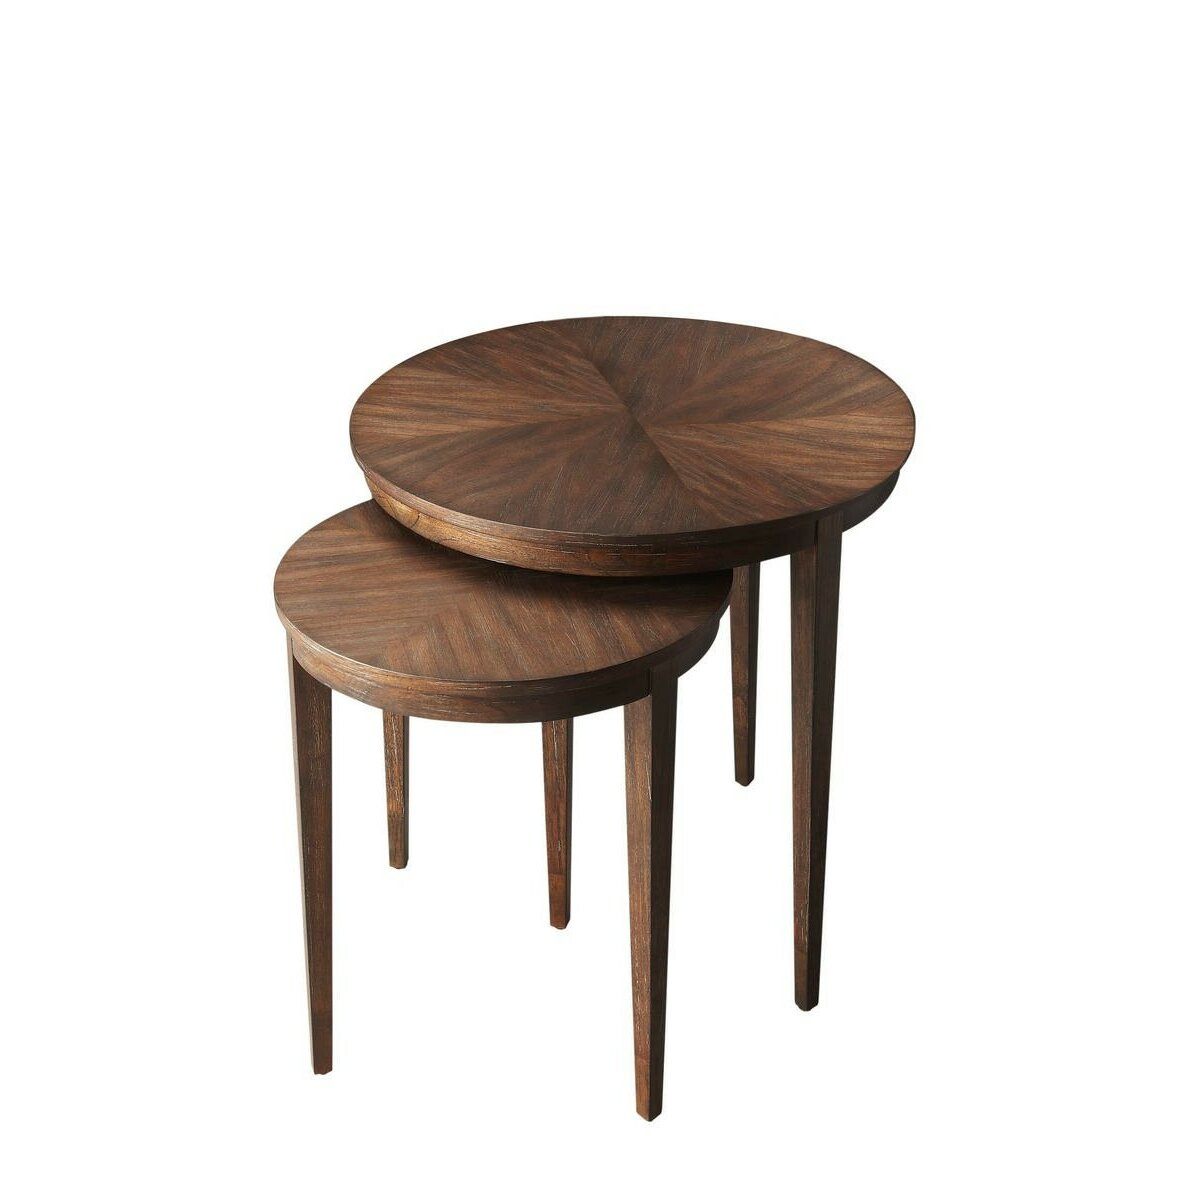 Maiden Lane 2 Piece Nesting Tables & Reviews | AllModern